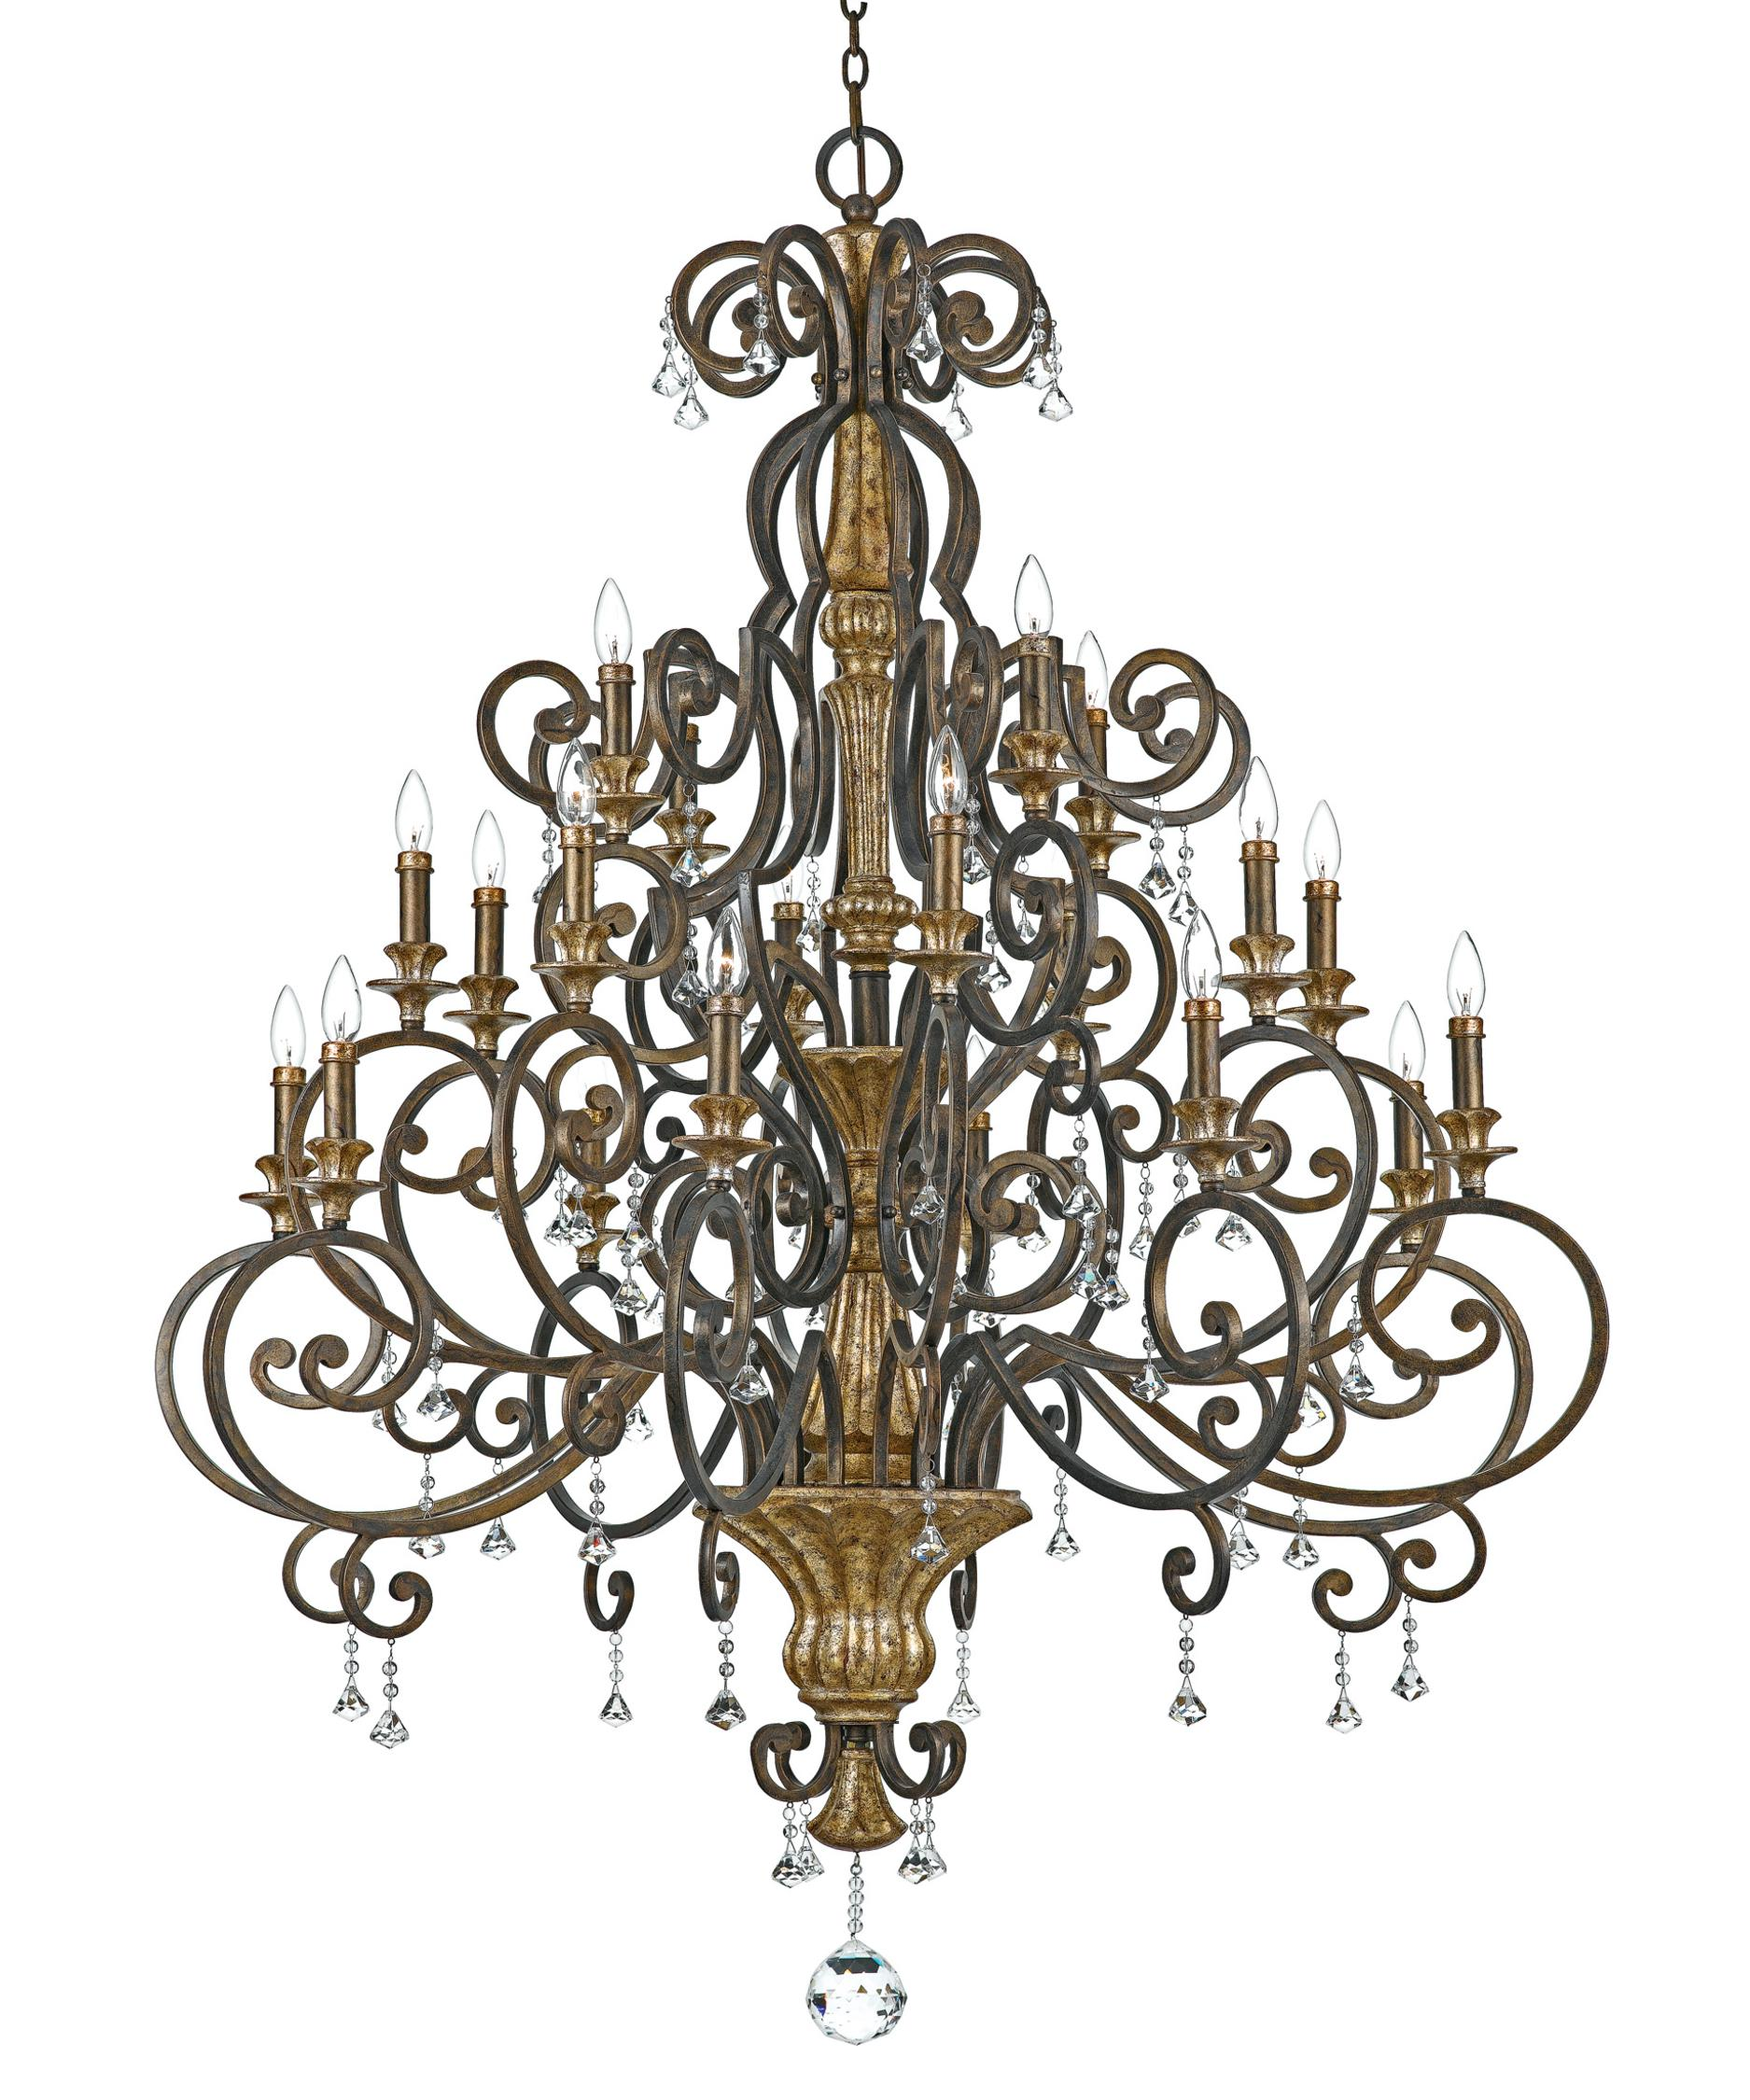 Quoizel Marquette 50 Inch Wide 20 Light Chandelier – Quoizel Chandelier